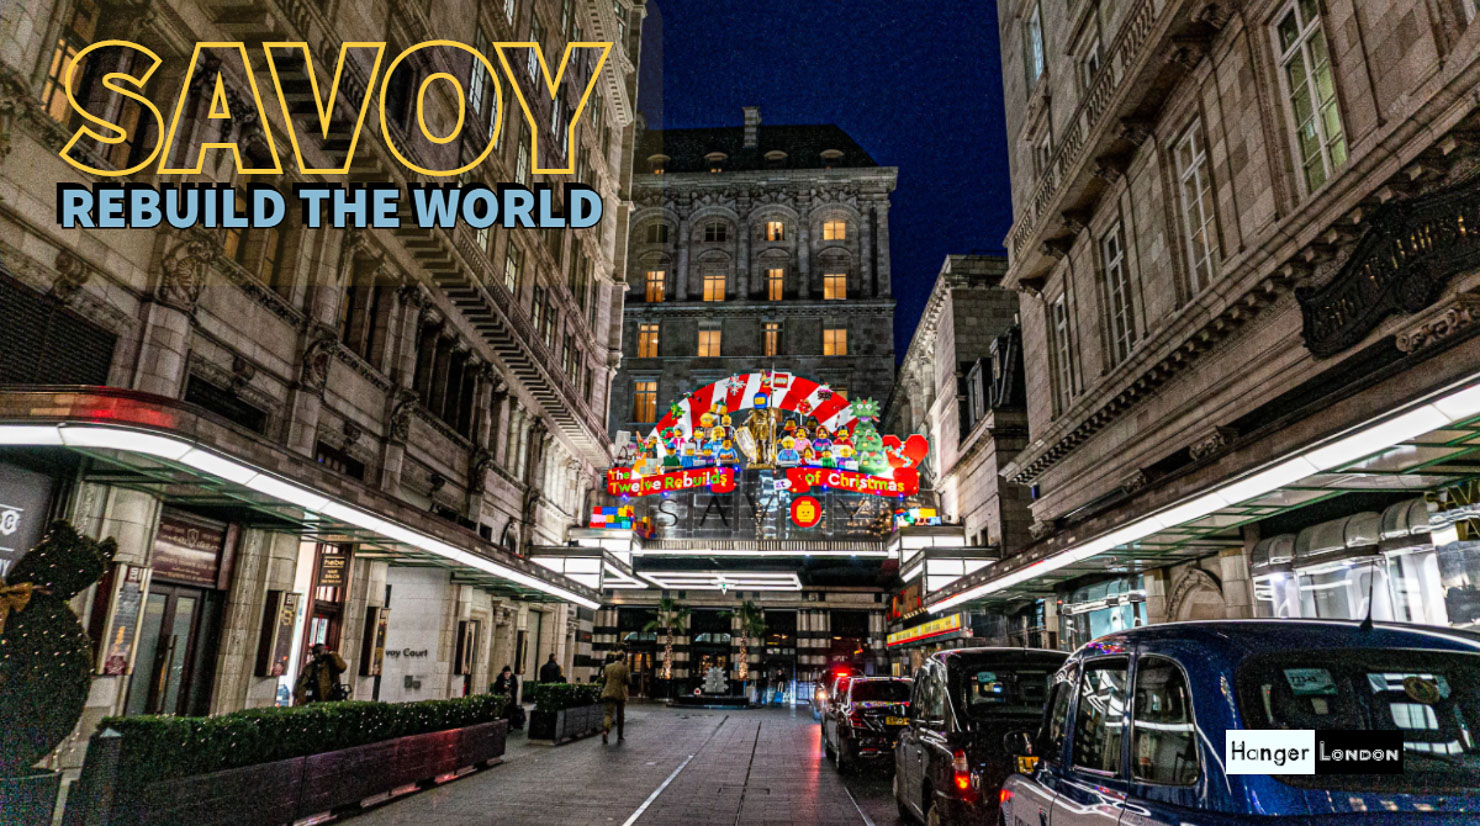 Savoy rebuild the world in lego